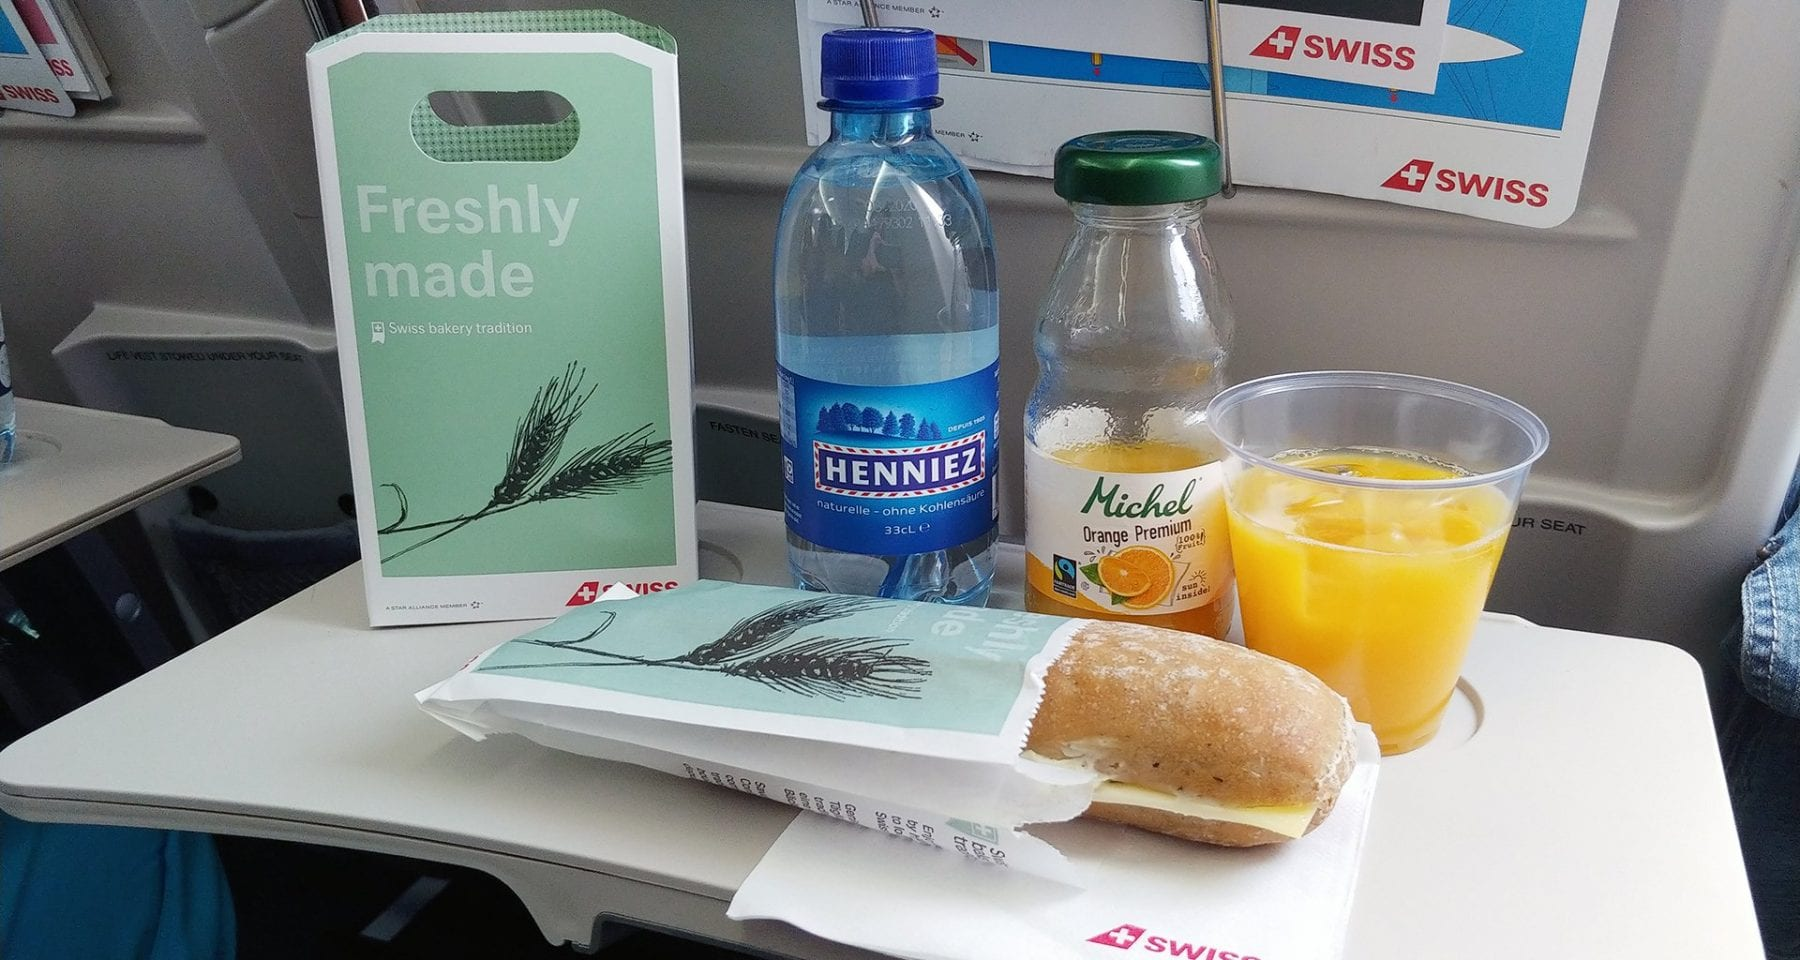 swiss airlines economy class meal